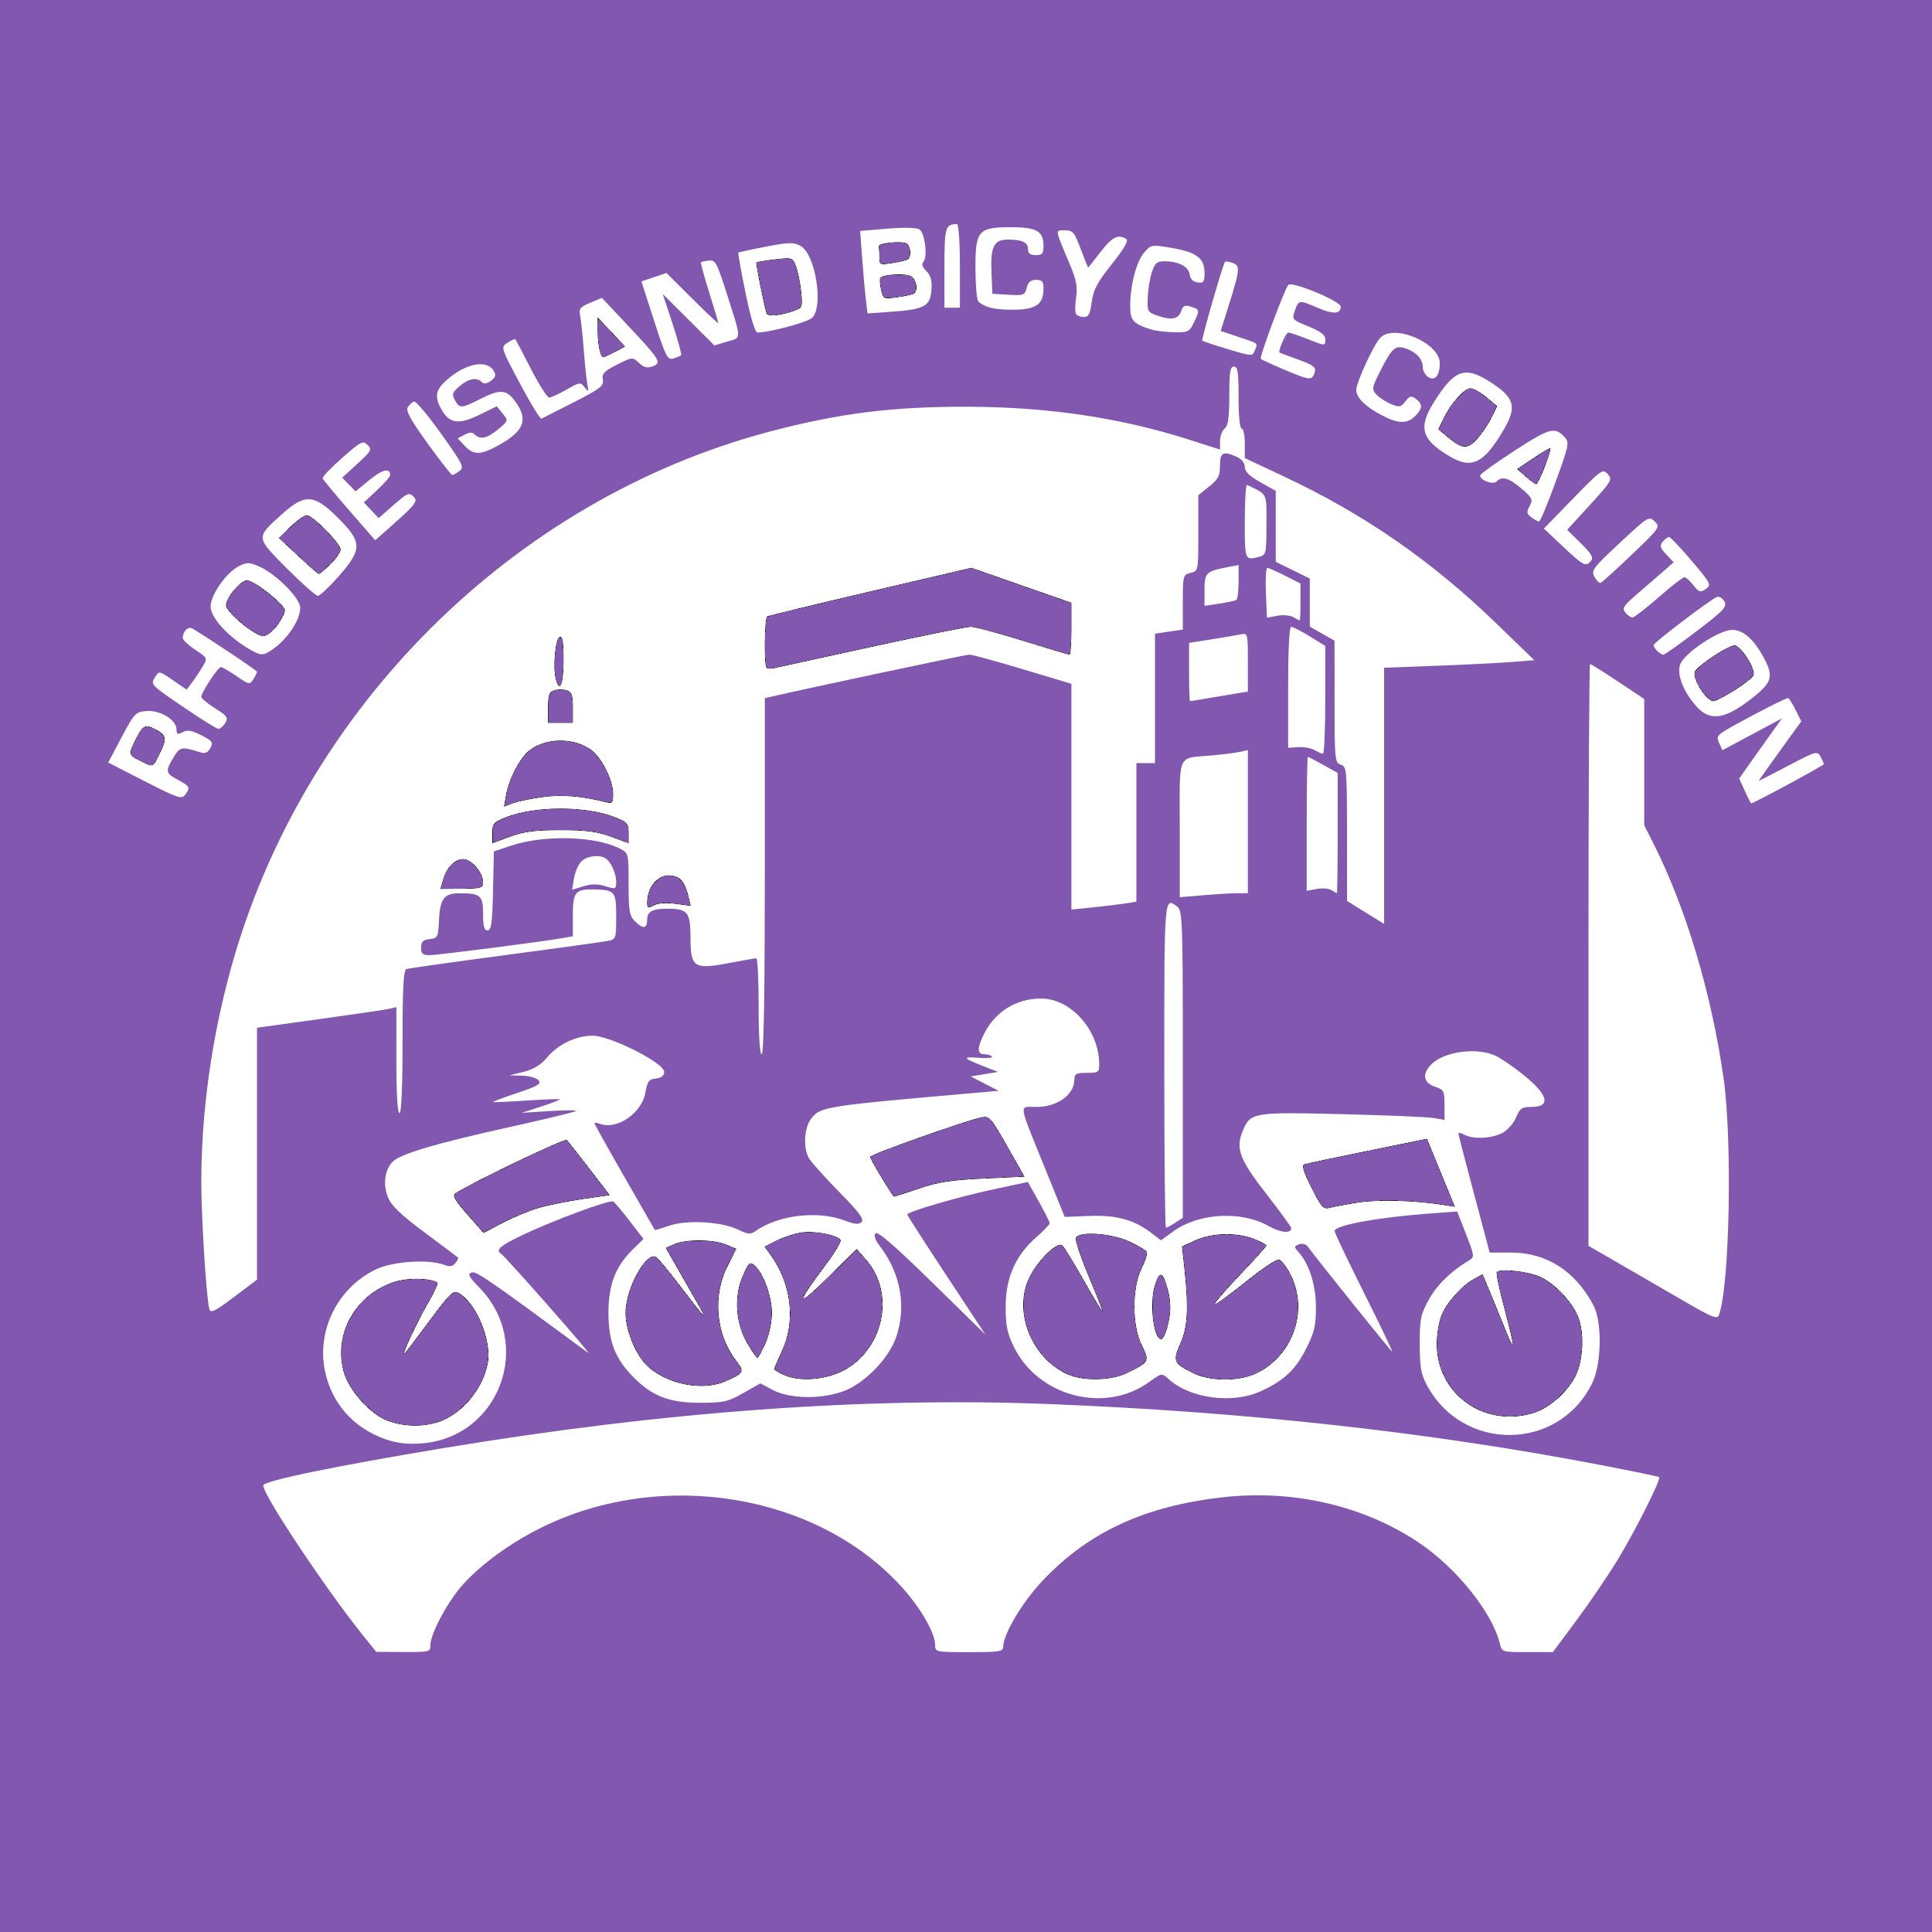 Rhode Island Bicycle Coalition Logo